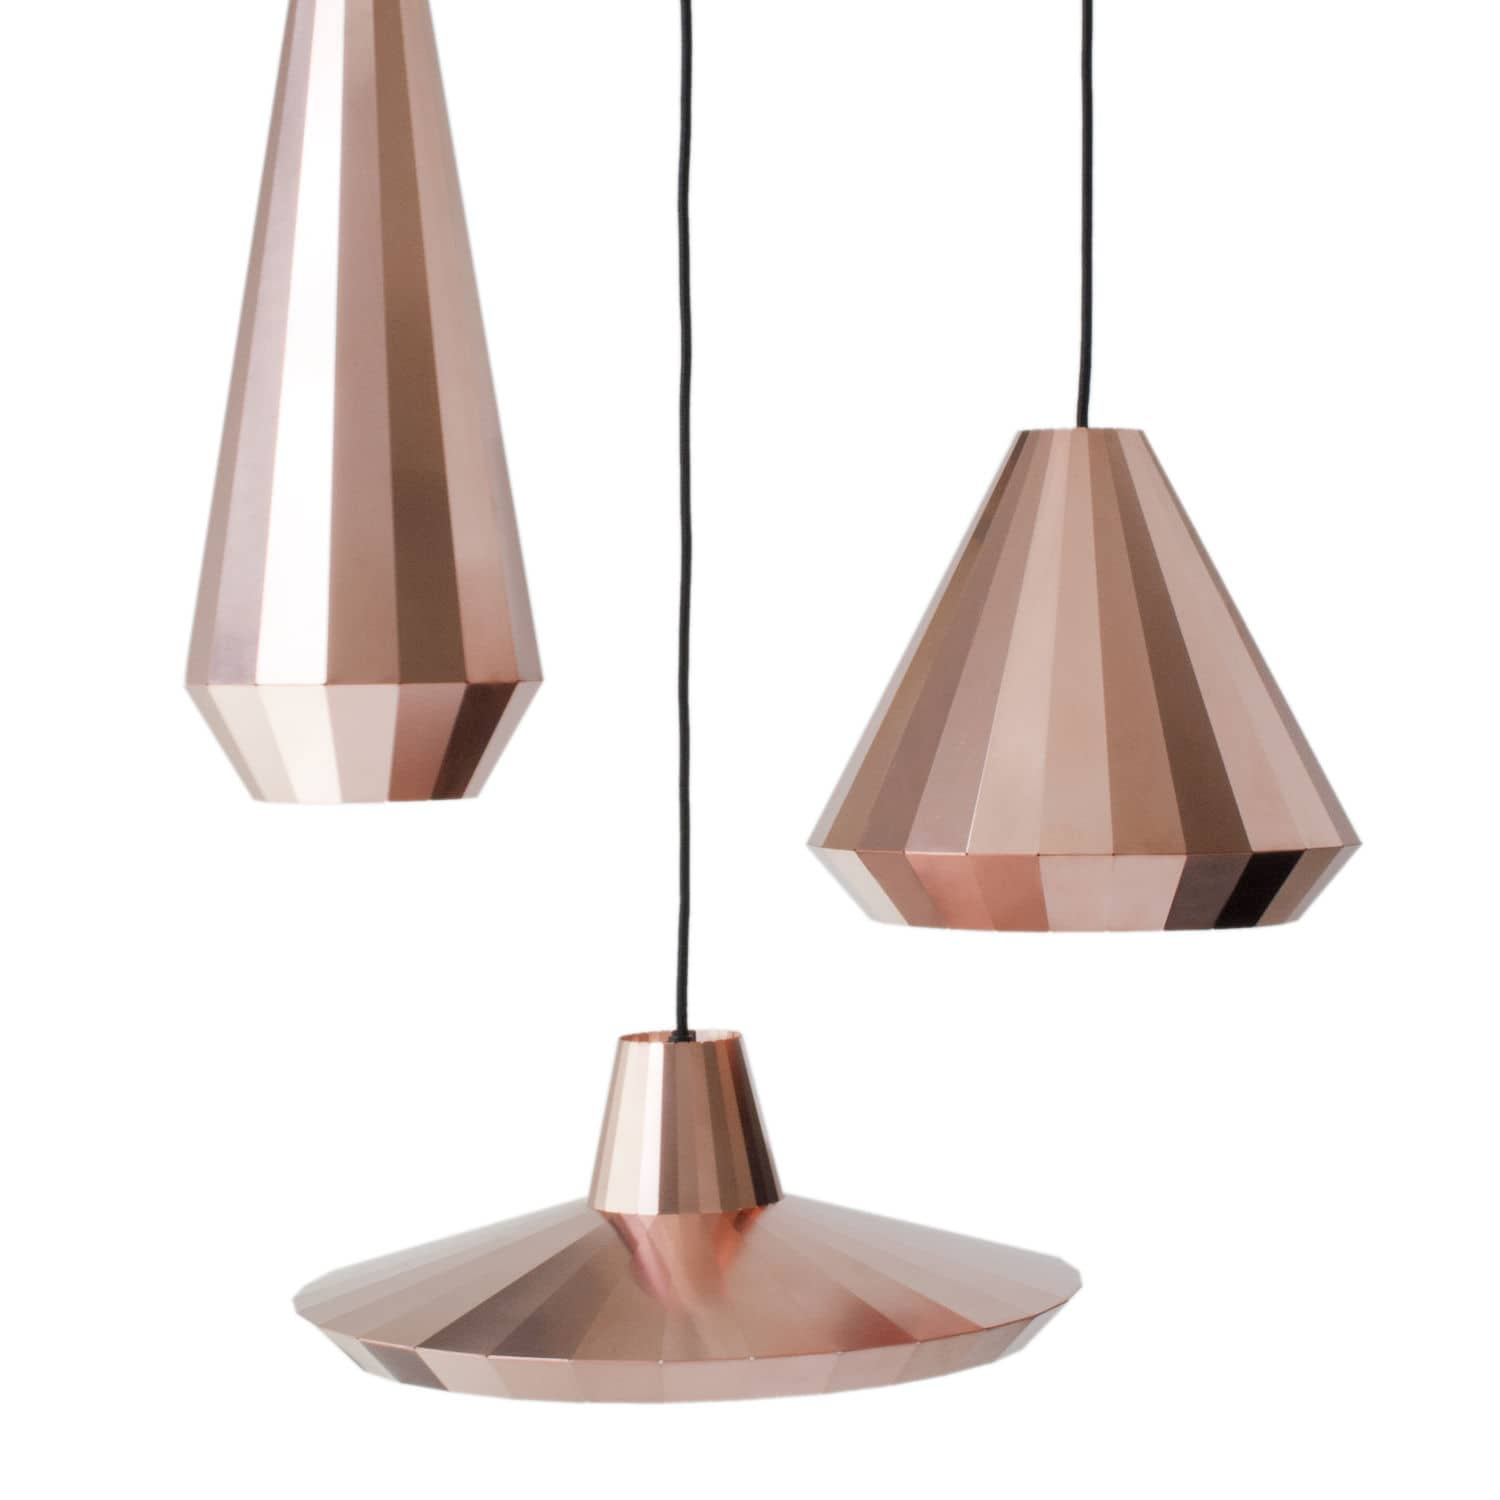 Lampe Suspension Cuivre Suspension Contemporaine En Laiton En Cuivre